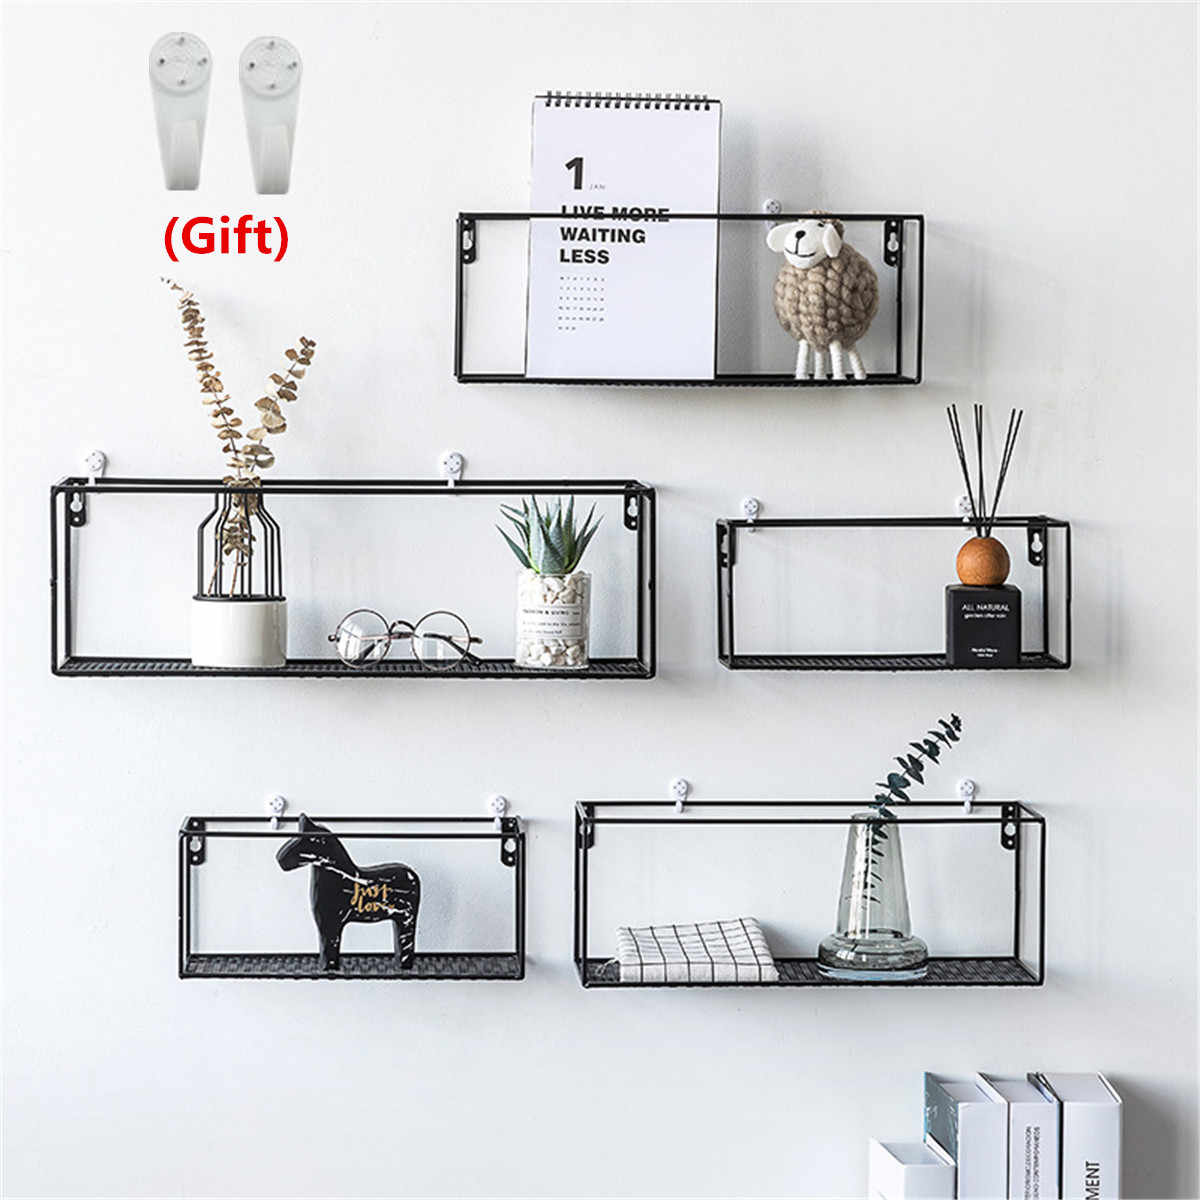 Iron Wall Shelf Wall Mounted Storage Rack Organization For Kitchen Bedroom Home Decor Kid Room Diy Wall Decoration Holder